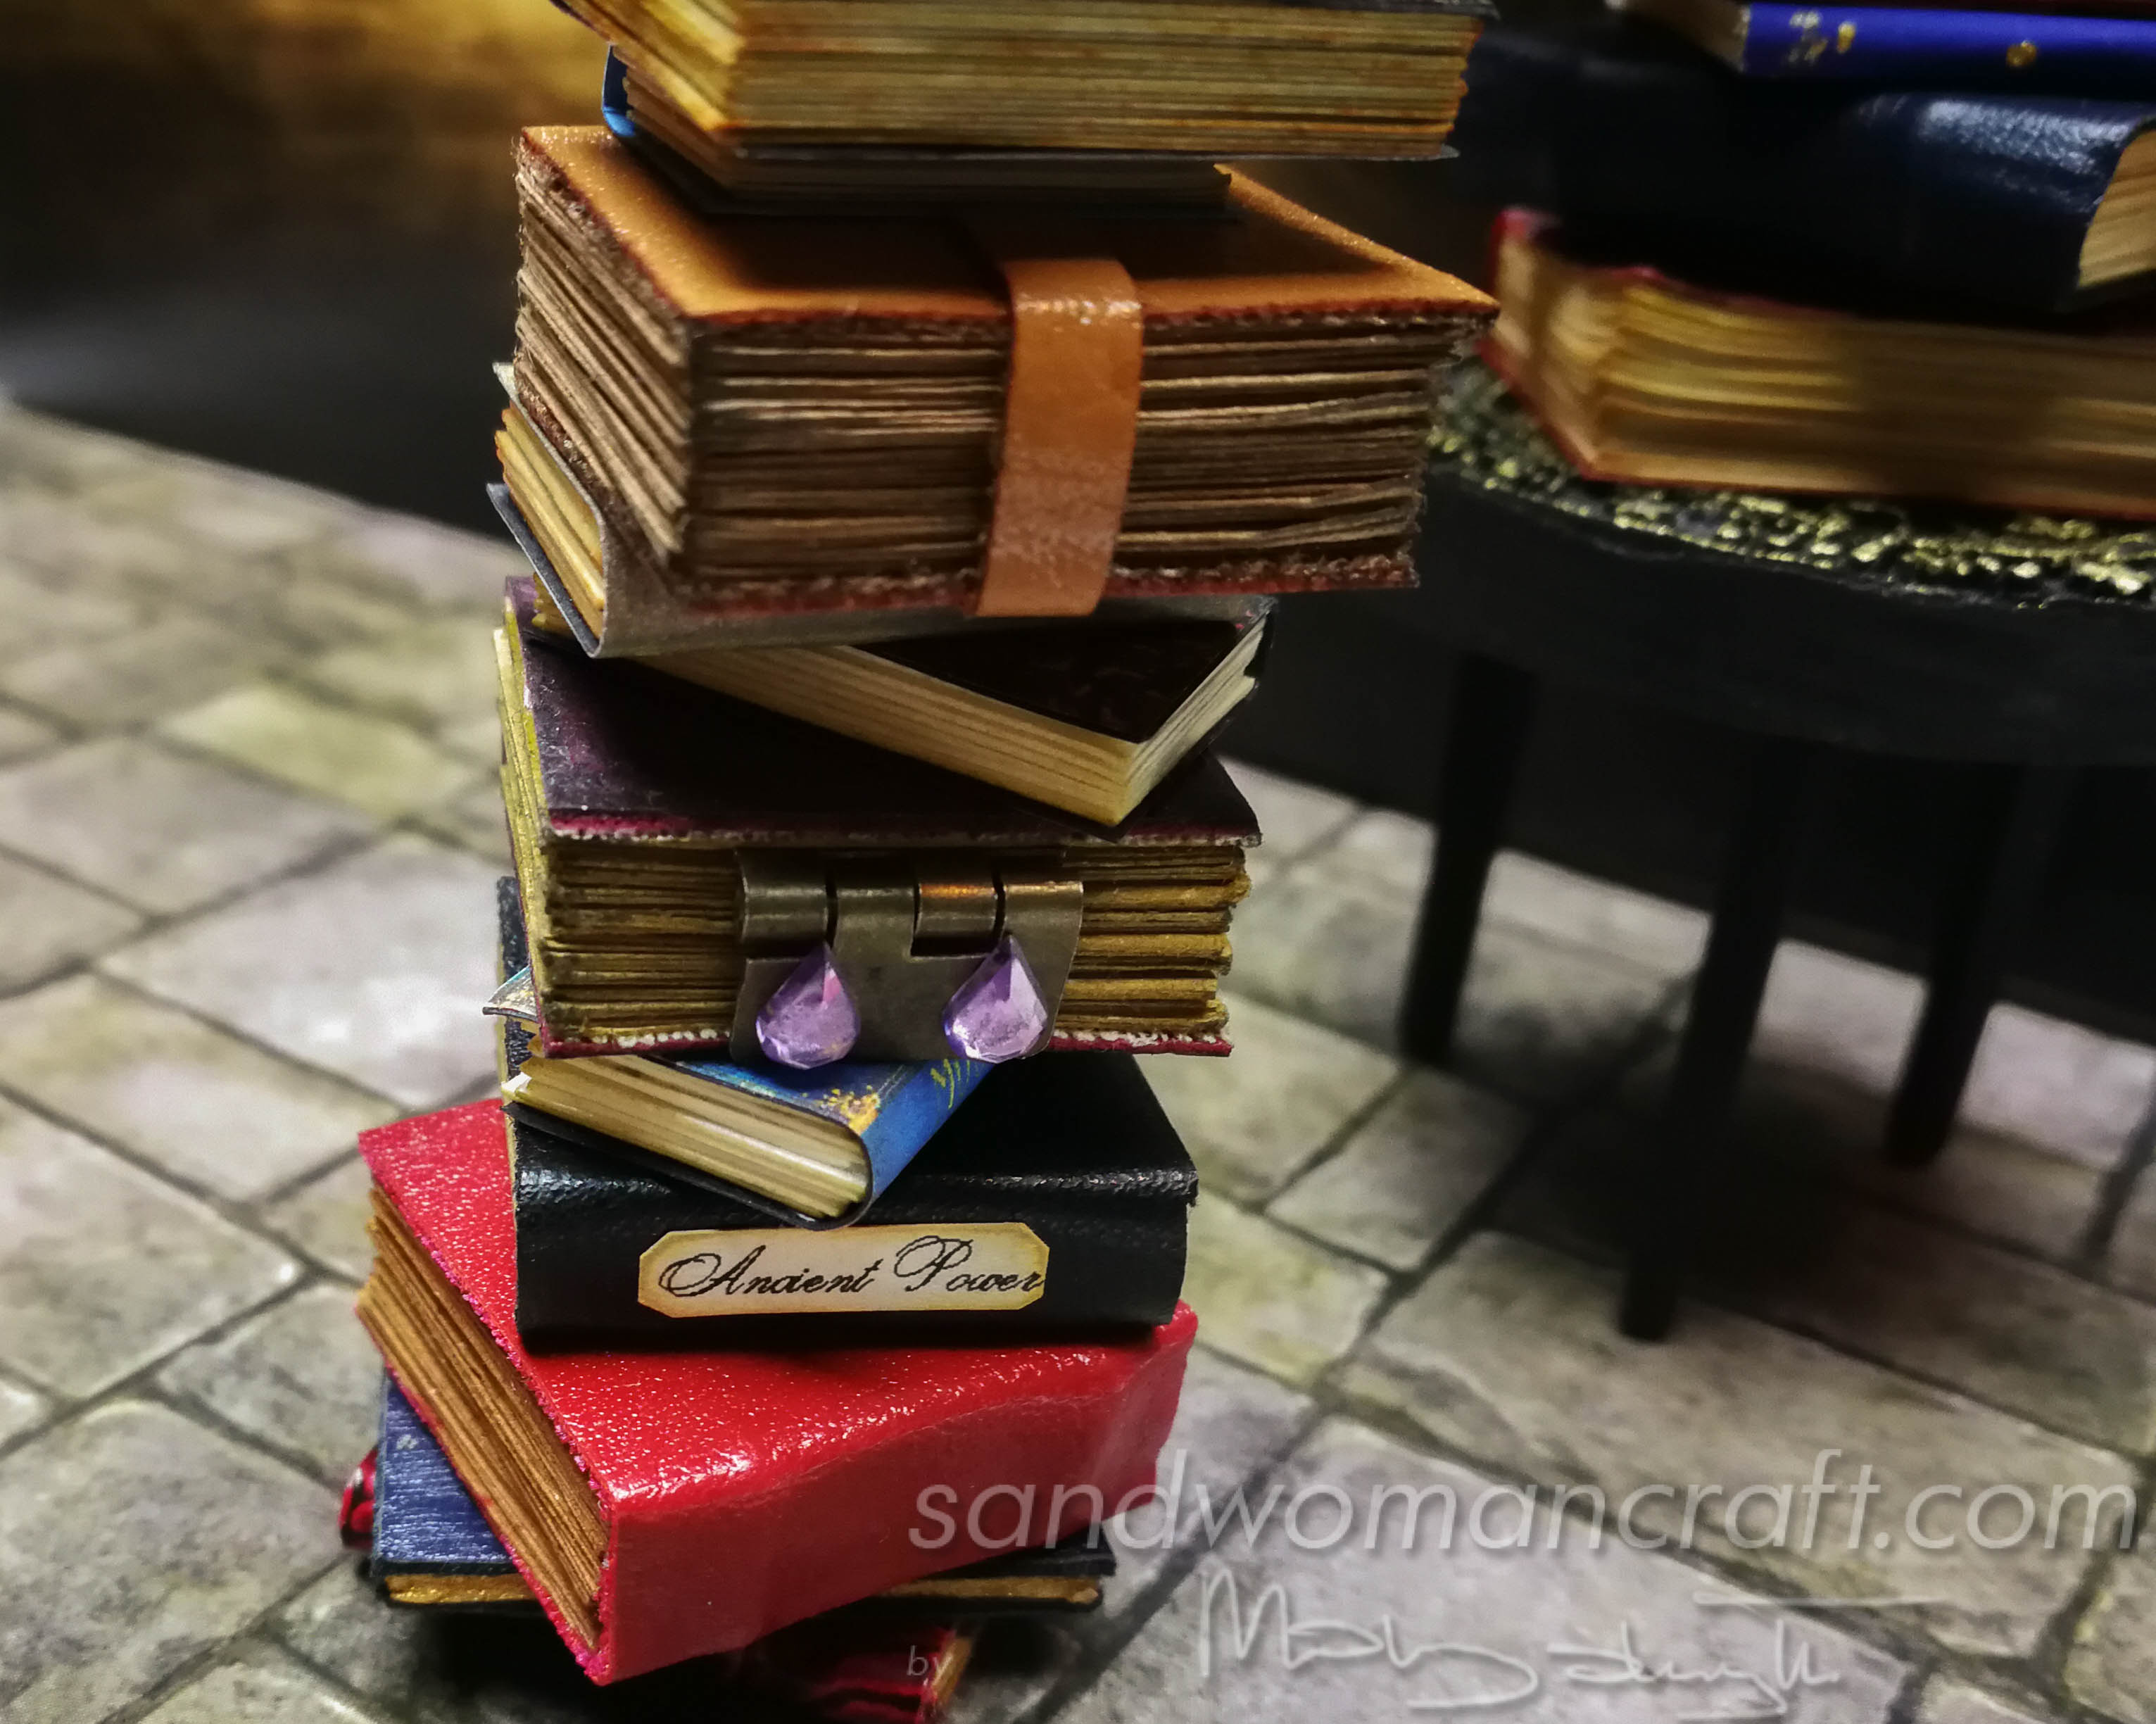 Miniature leather spell books